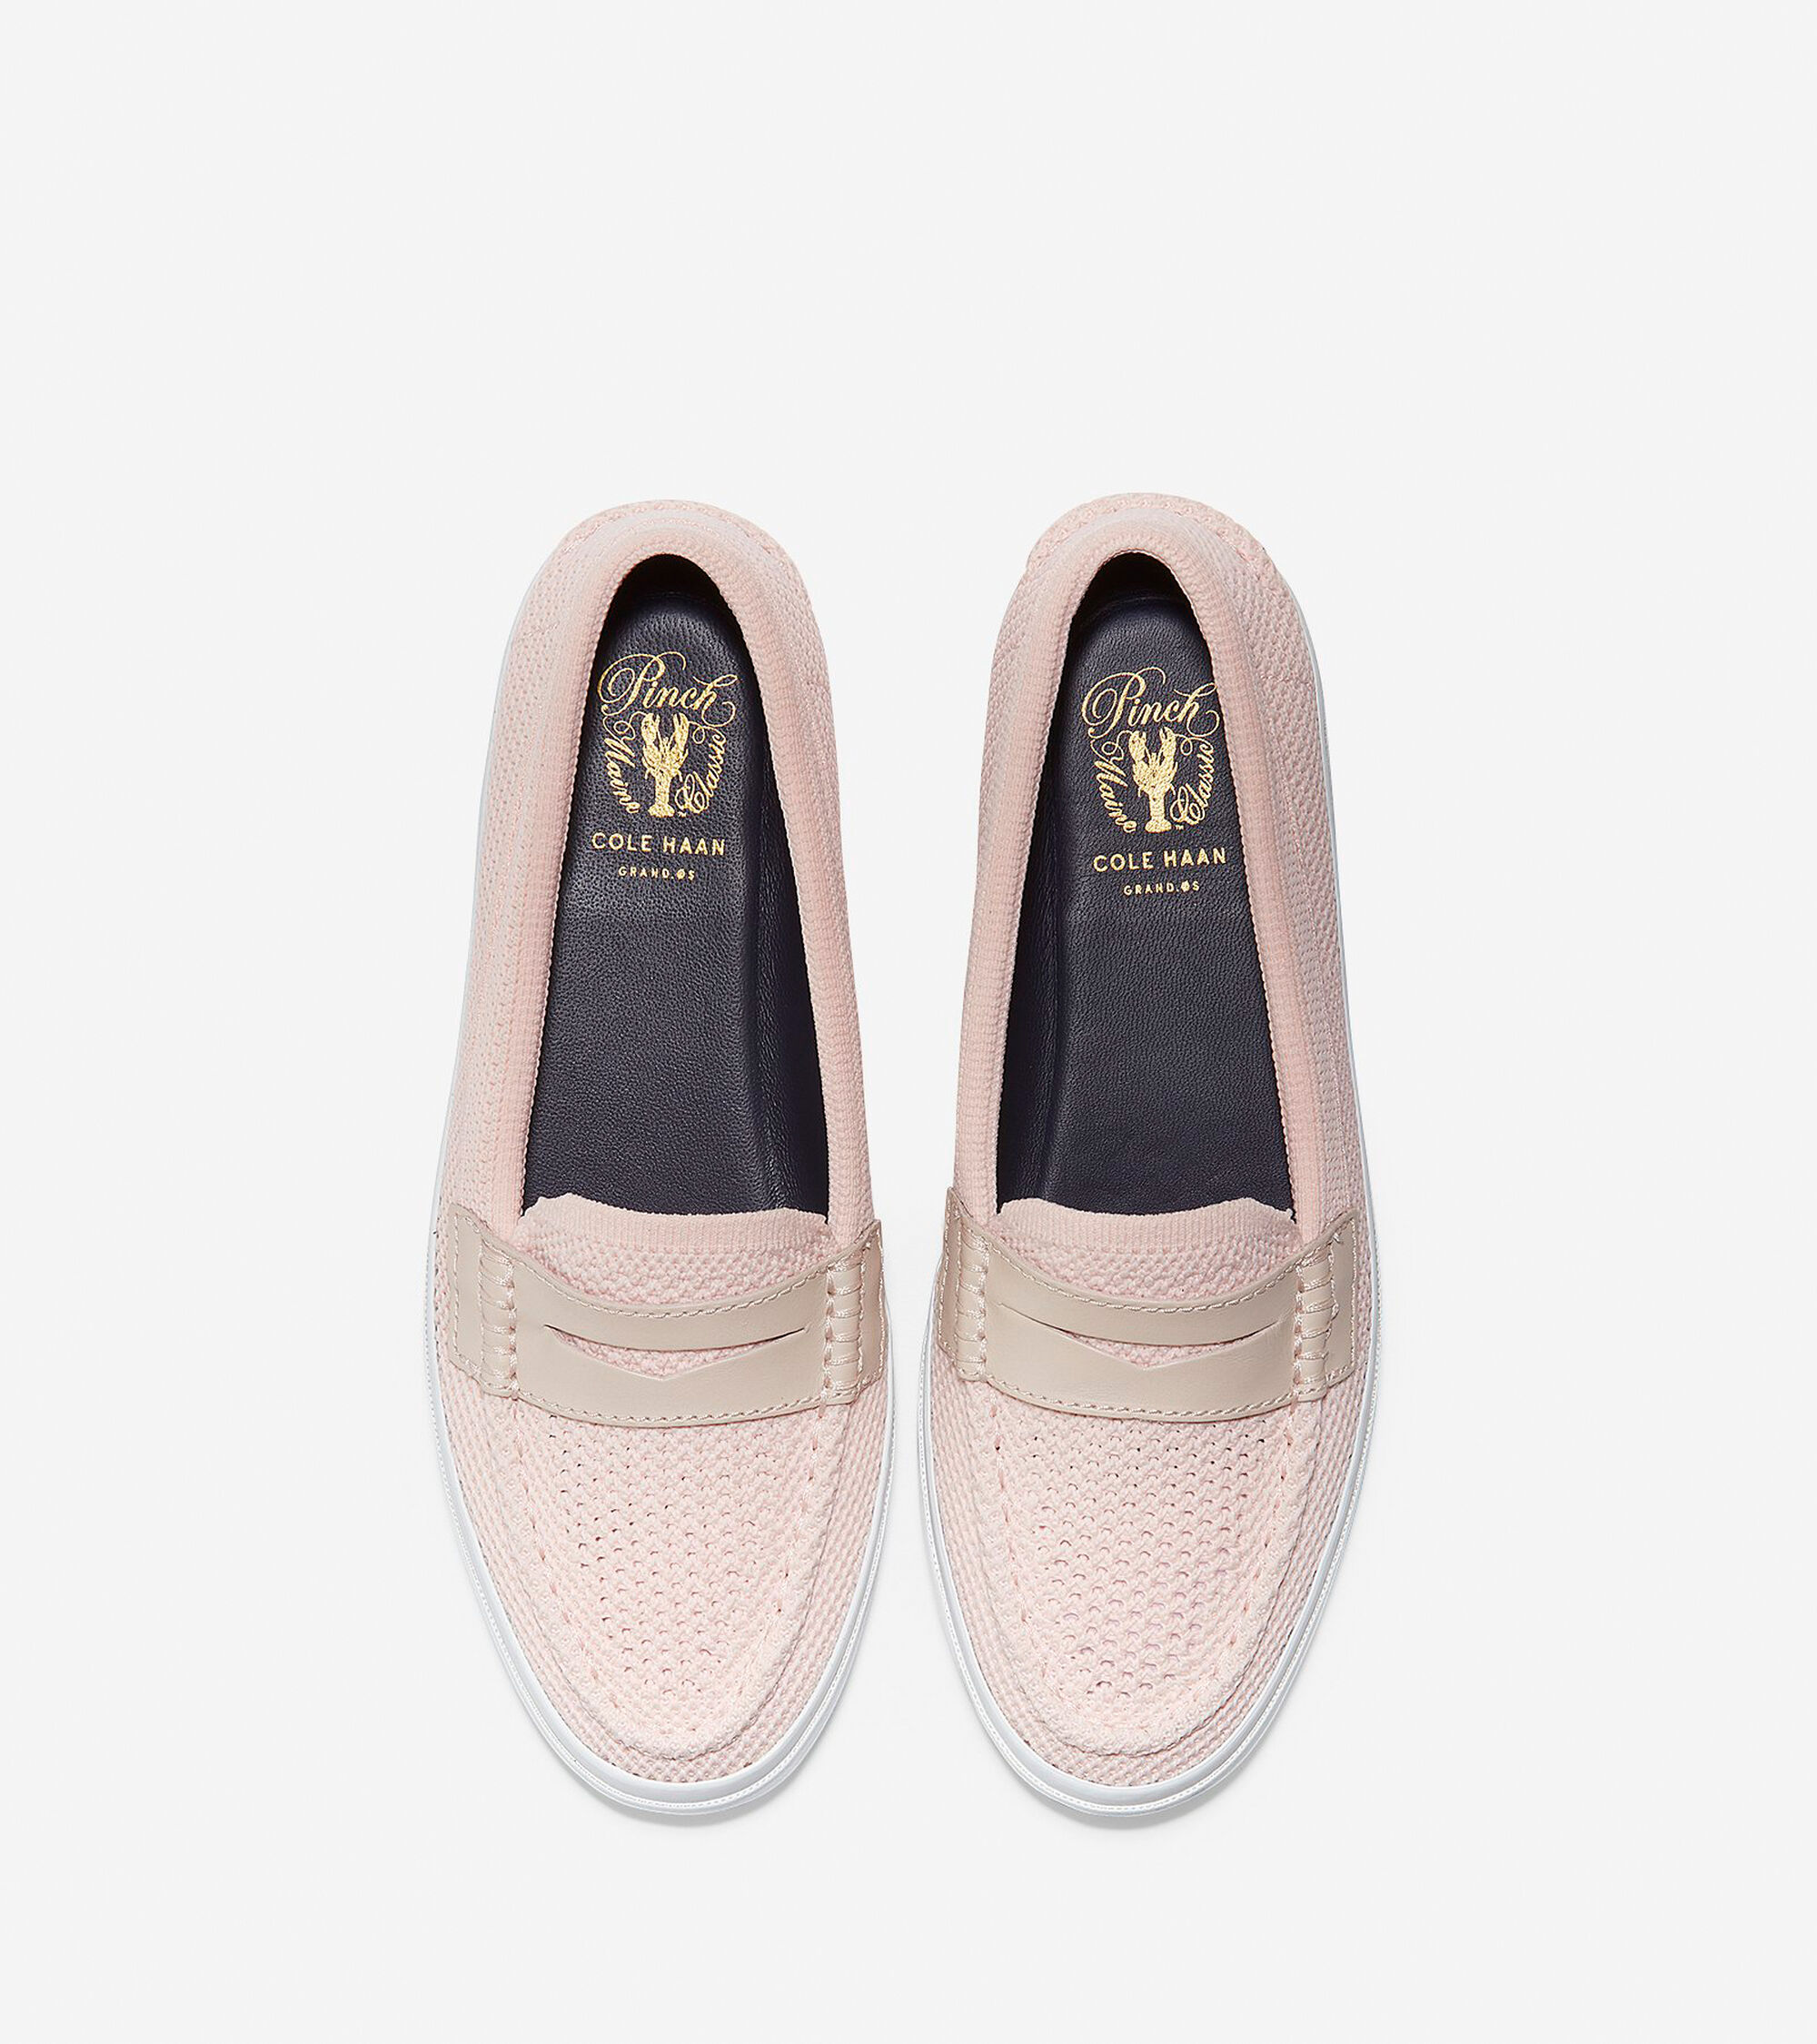 61cd9a1dd37 ... Women s Pinch Weekender LX Loafer with Stitchlite™ ...